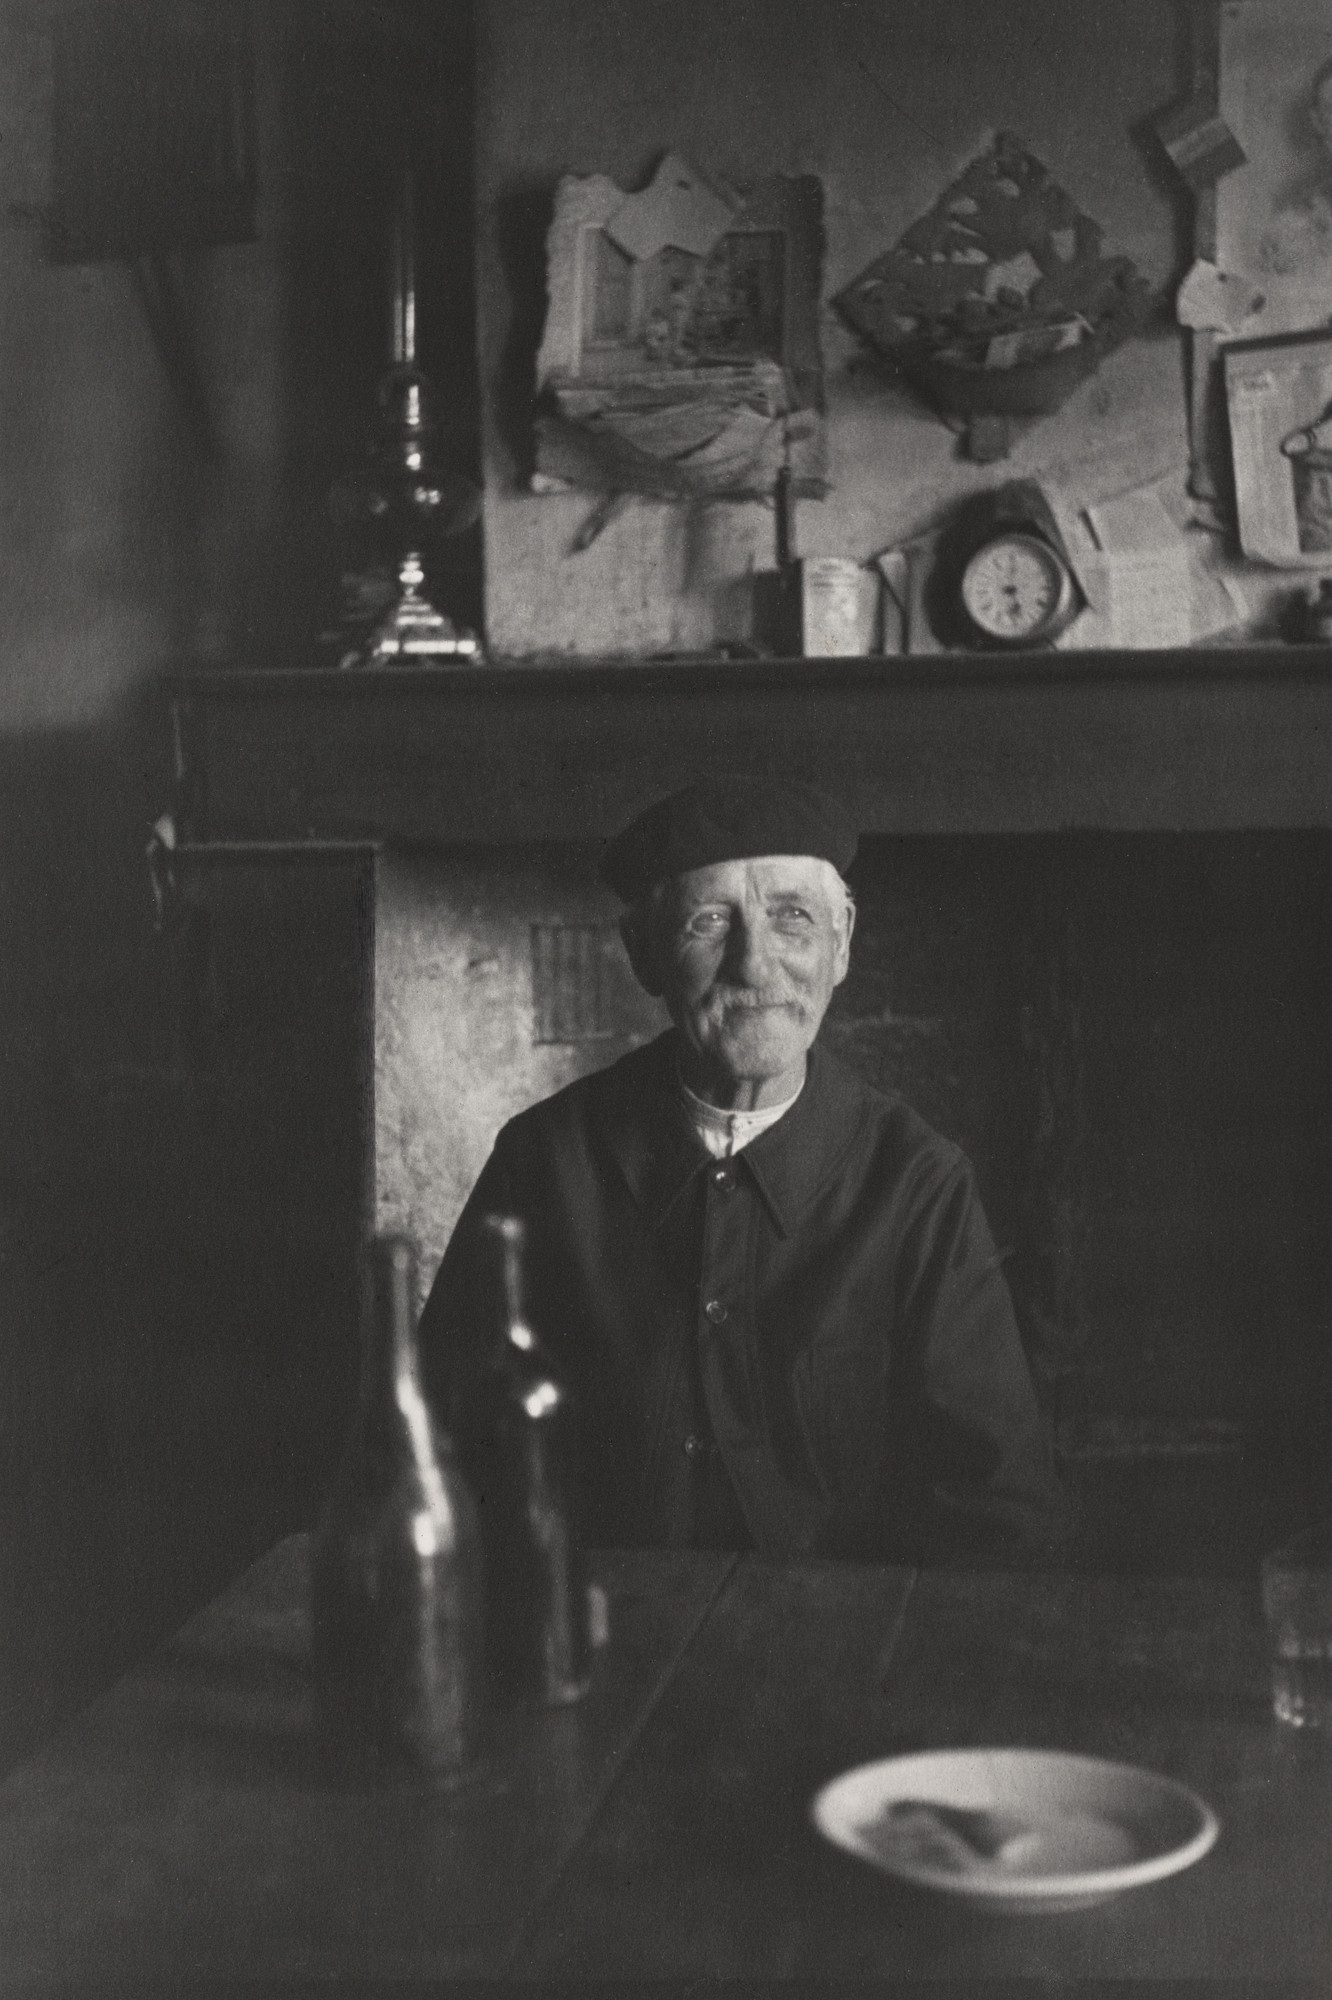 Henri Cartier-Bresson. Wine Grower of Touraine, France. 1946